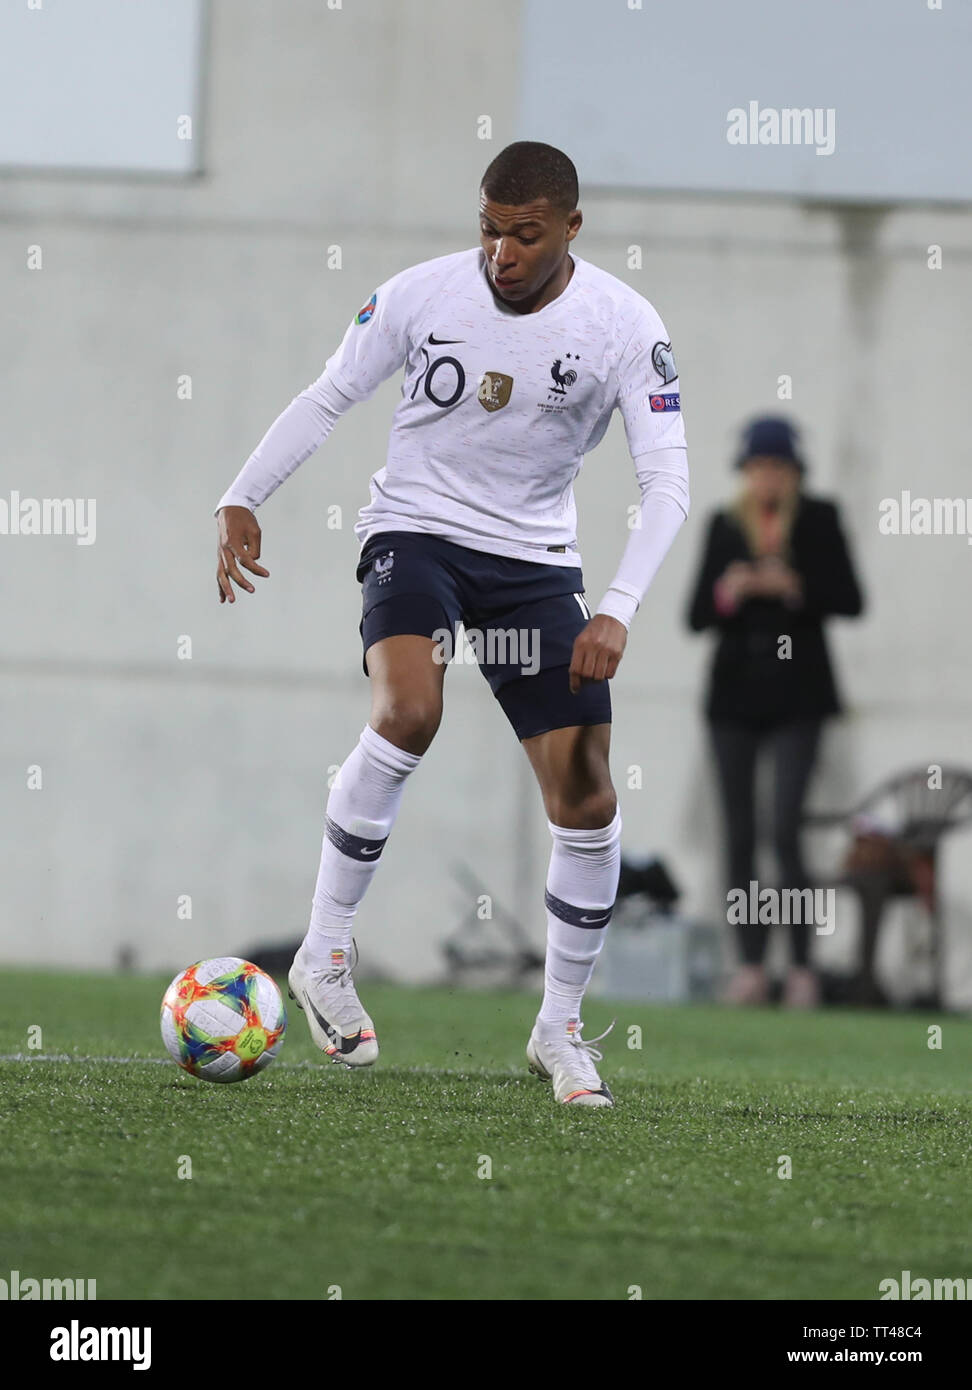 Kylian Mbappé of Franceduring the UEFA Euro 2020 Qualifying Group H football match between Andorra and France on June 11, 2019 at Estadi Nacional in Andorra la Vella, Andorra - Photo Laurent Lairys / DPPI Stock Photo